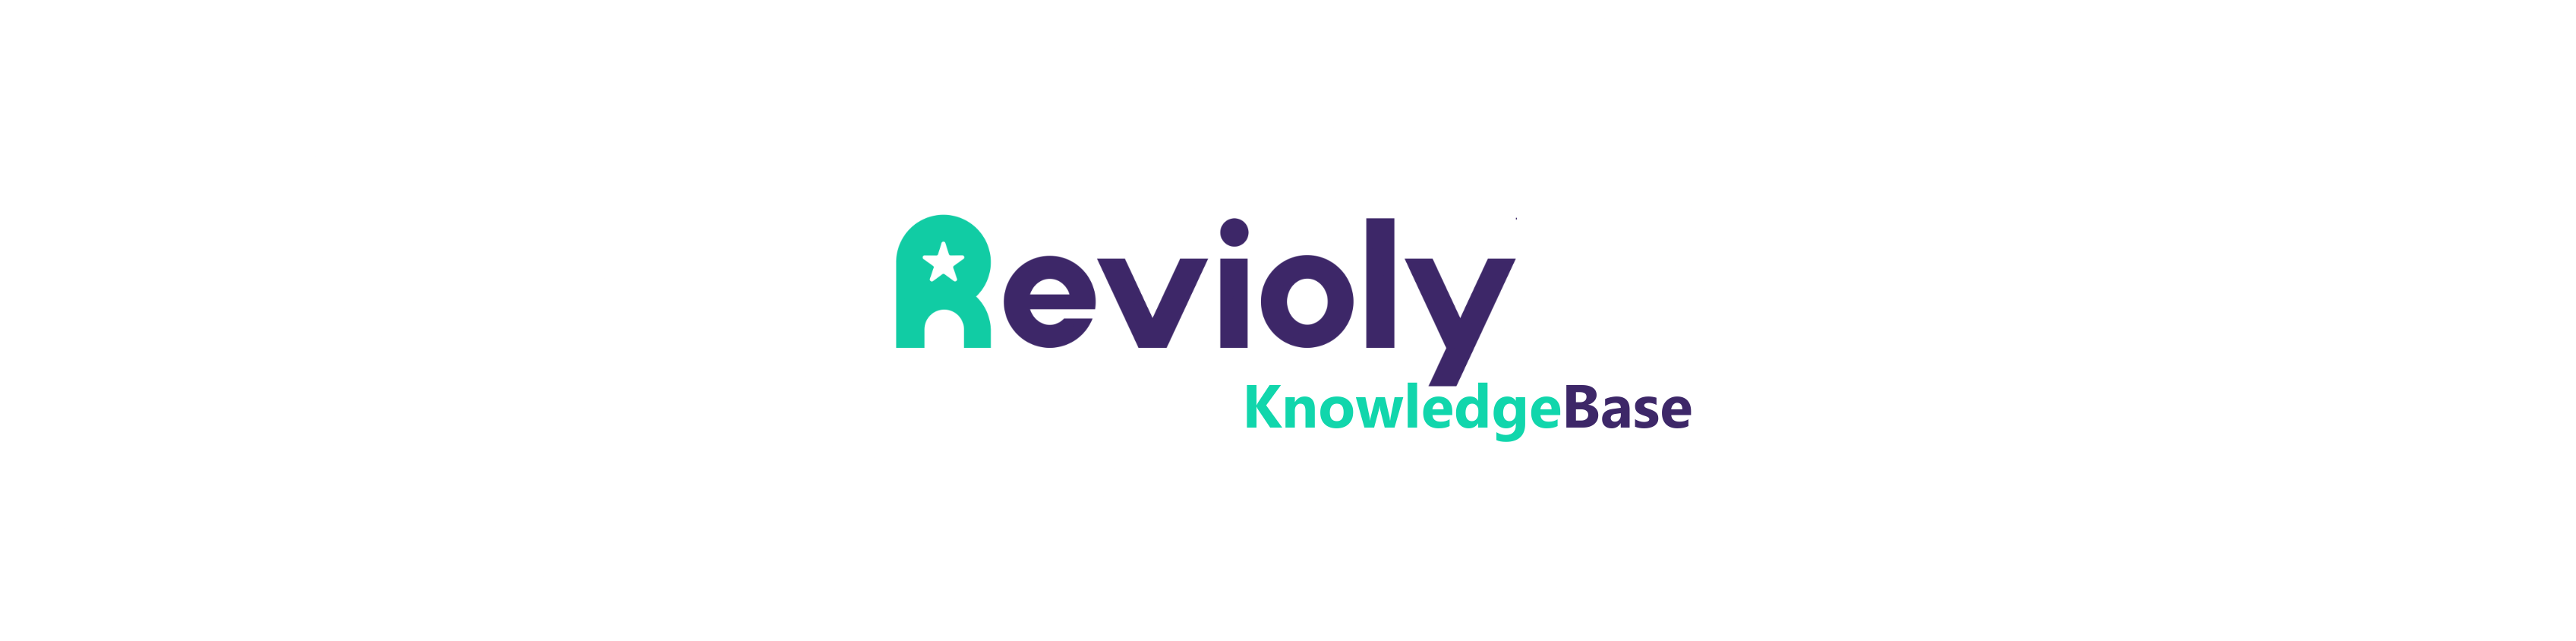 Revioly Product Reviews - Knowledgebased